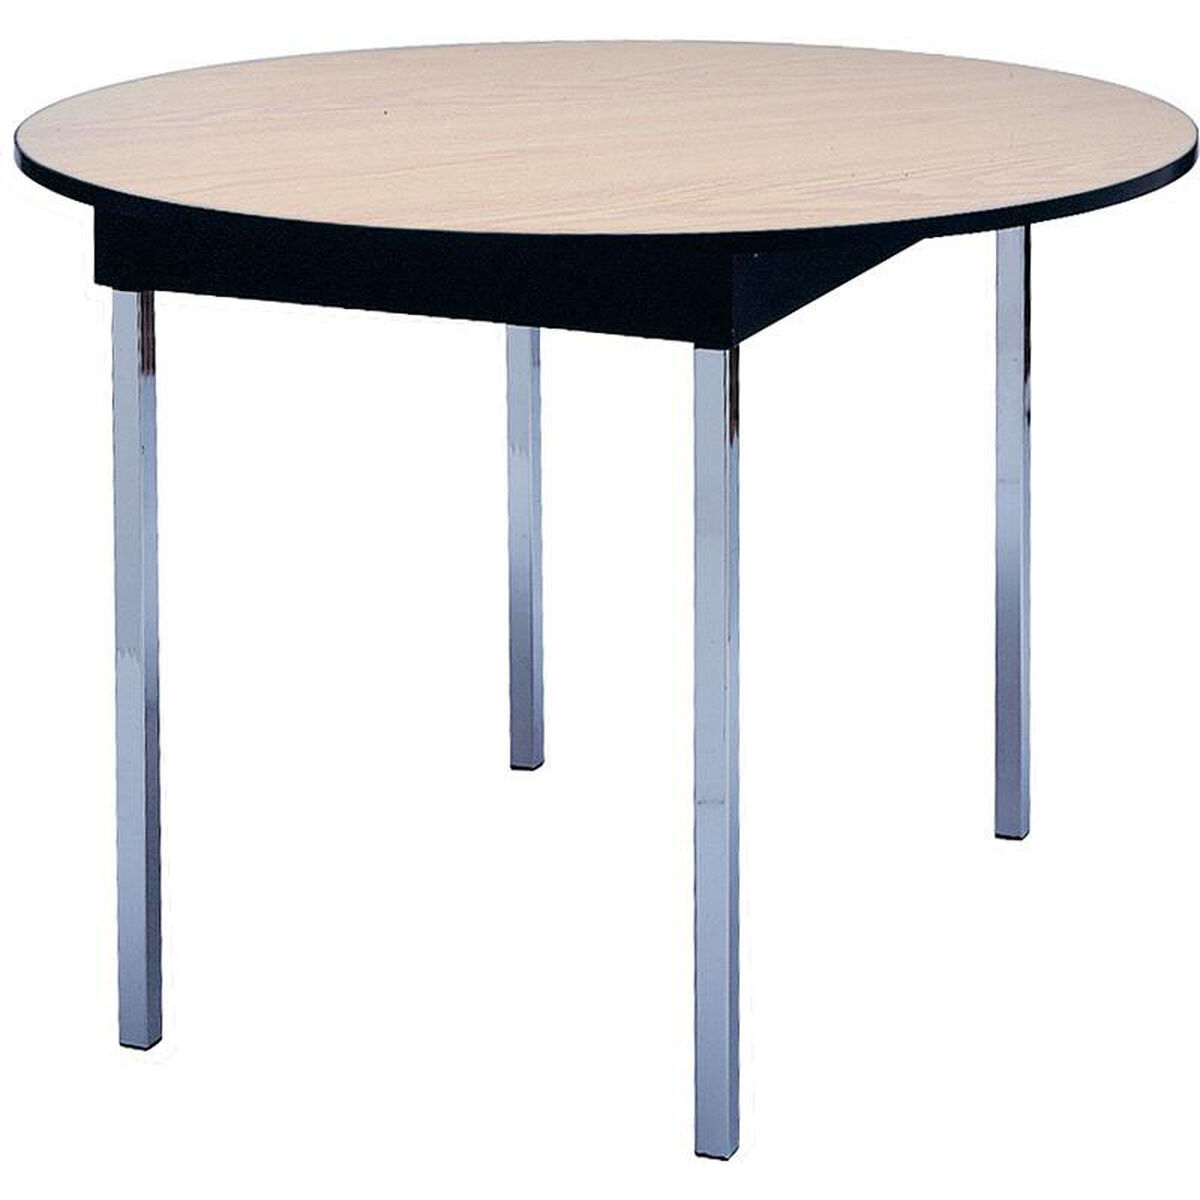 Round Conference Table DLDELRDVFE FoldingChairsLesscom - 72 round conference table